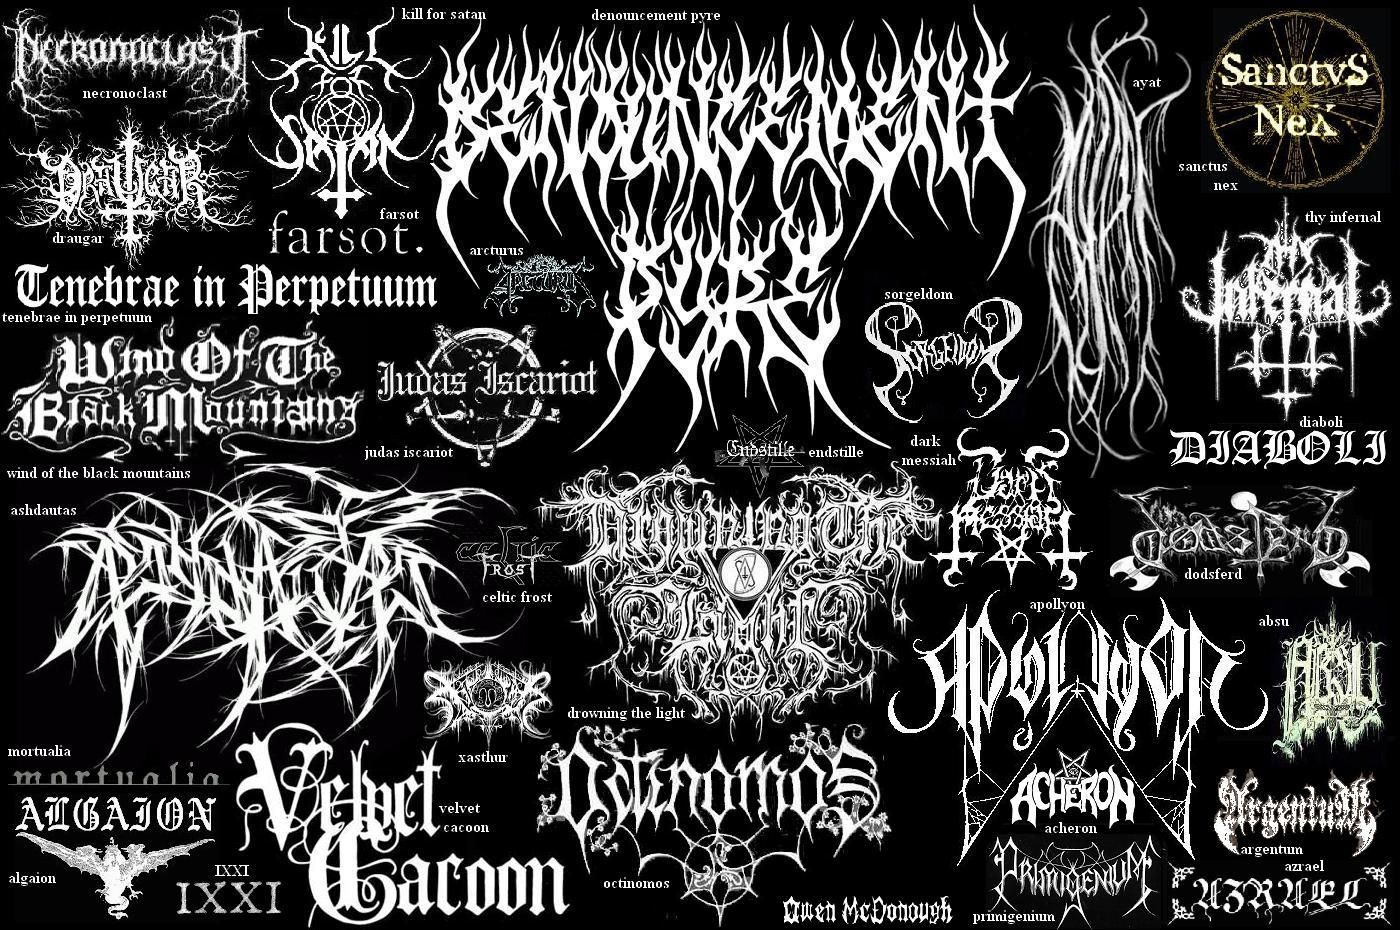 Black Metal logos. in 2019.